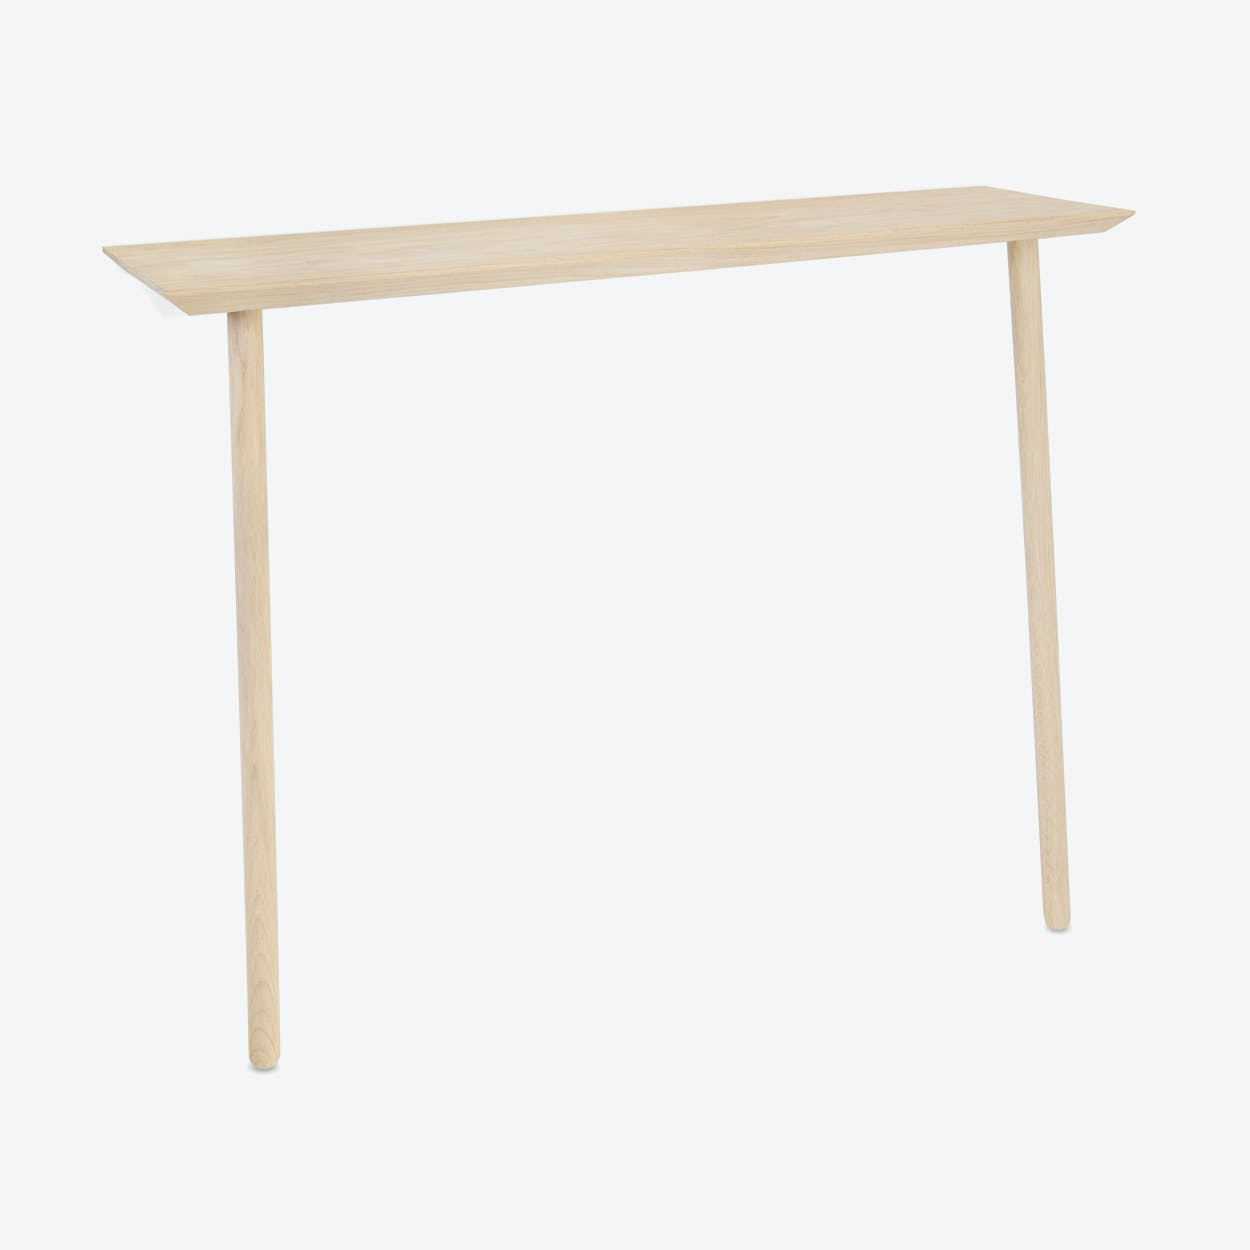 Hipsta Console in Natural Oak Wood Medium